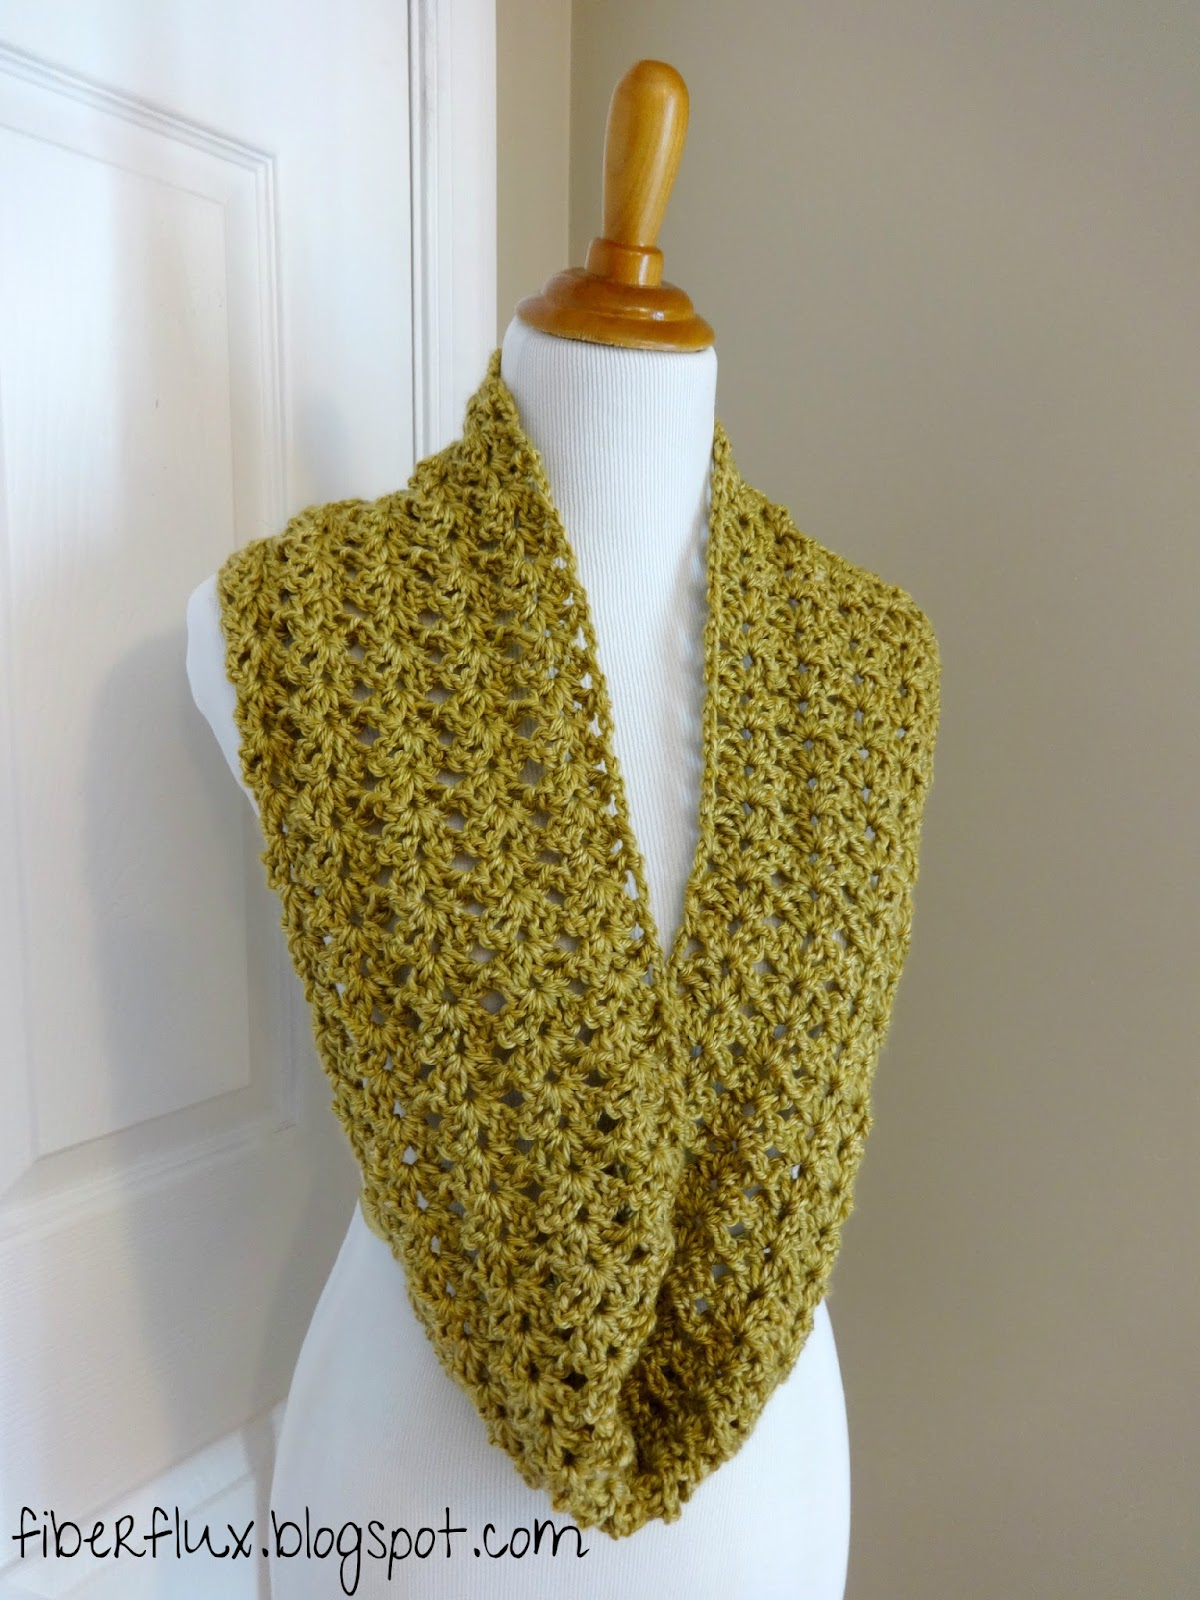 Free Patterns To And Crochet Infinity Scarf : Fiber Flux: Free Crochet Pattern...Gold Leaf Infinity Scarf!